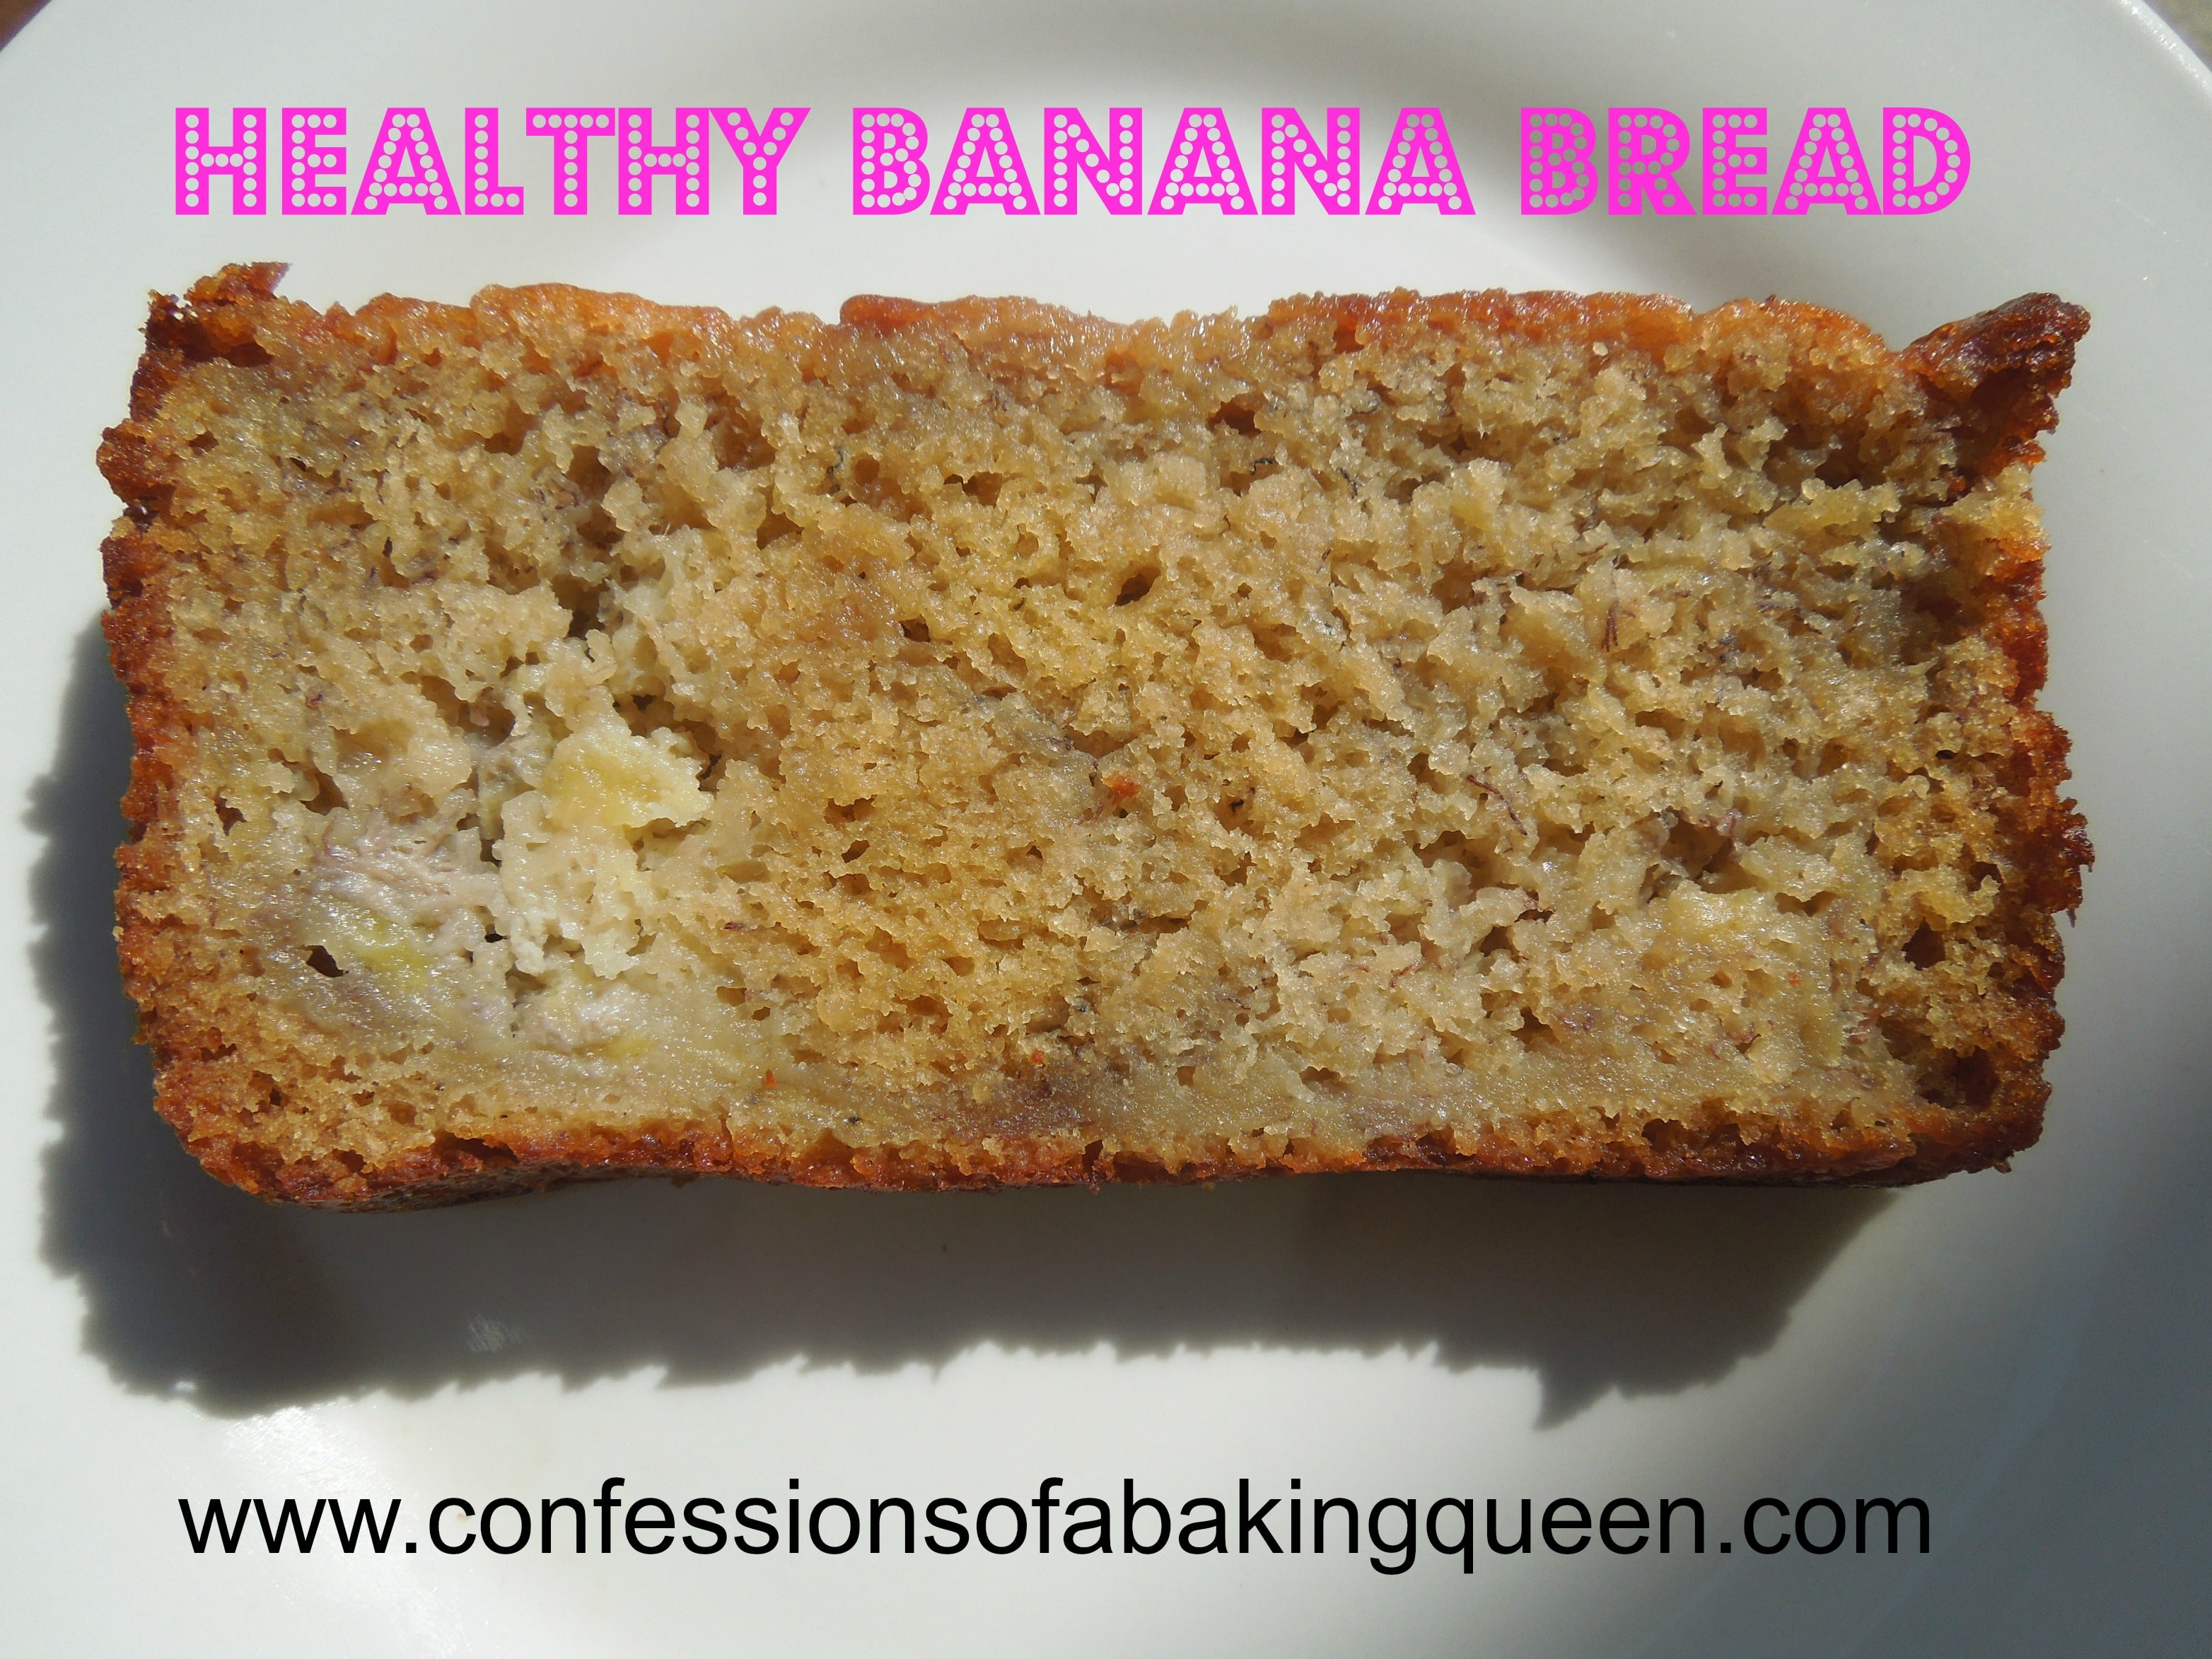 slice of skinny banana bread on a white plate